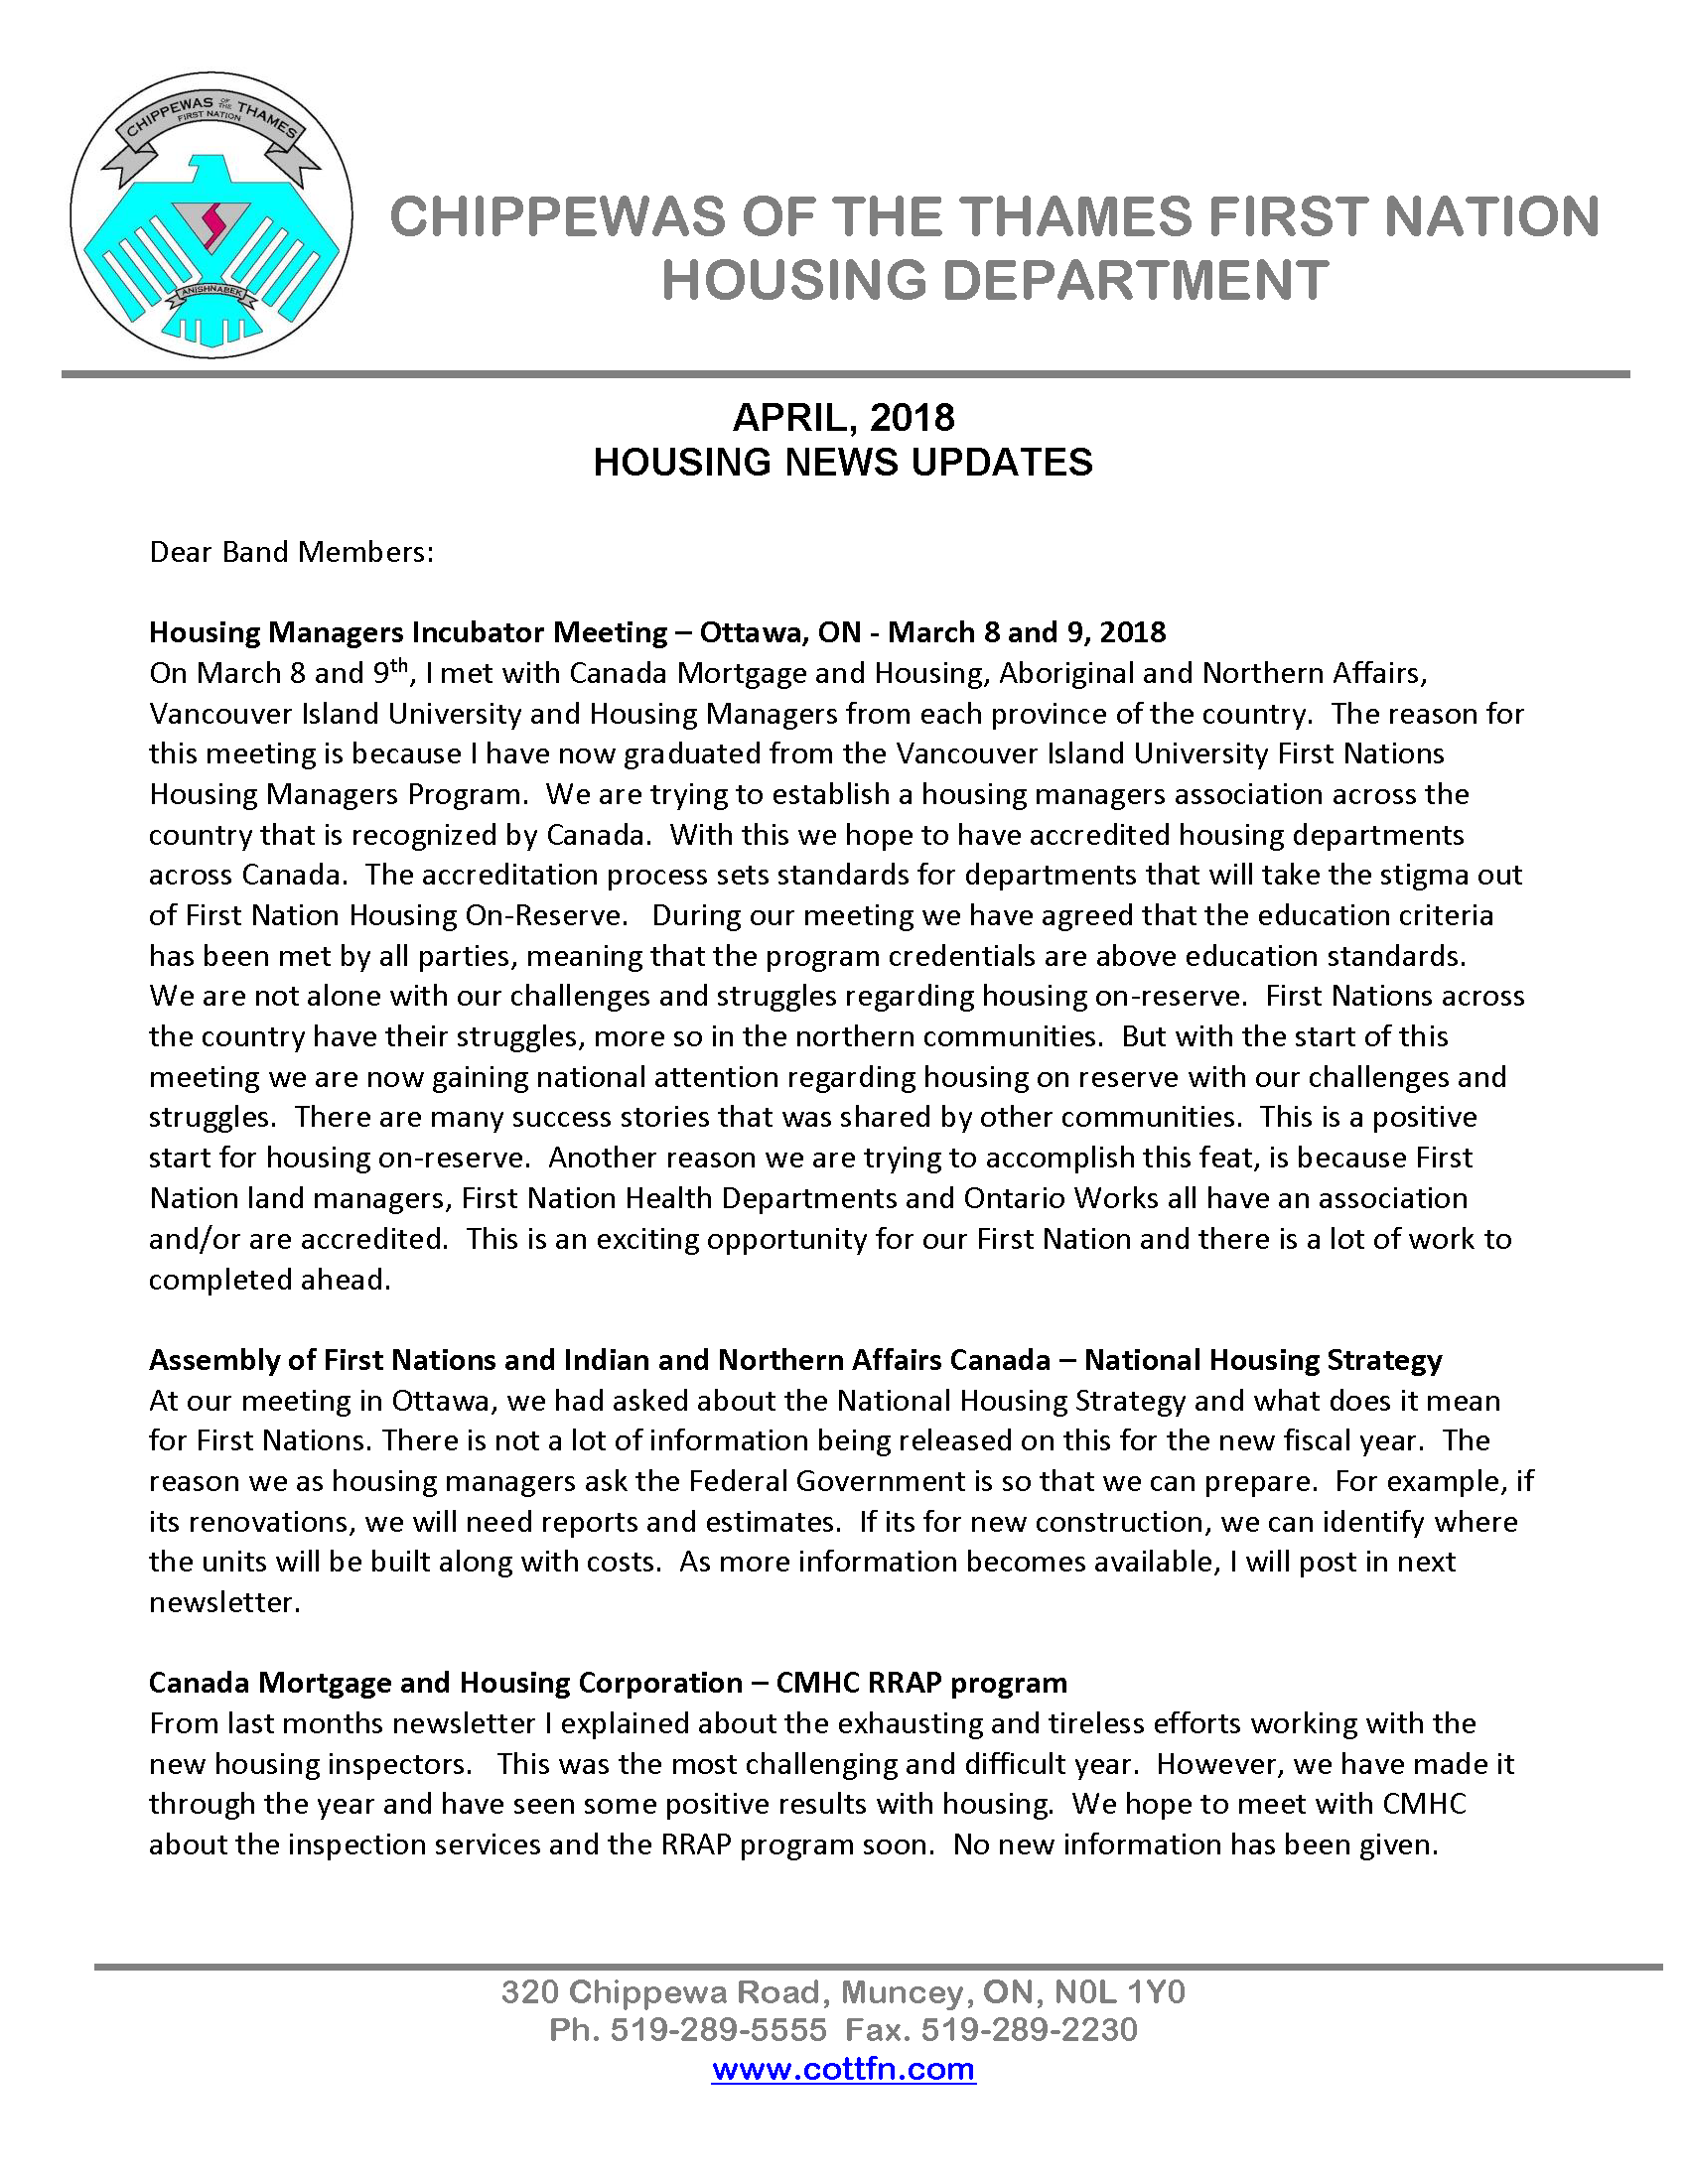 housing-news-april-2018_page_1